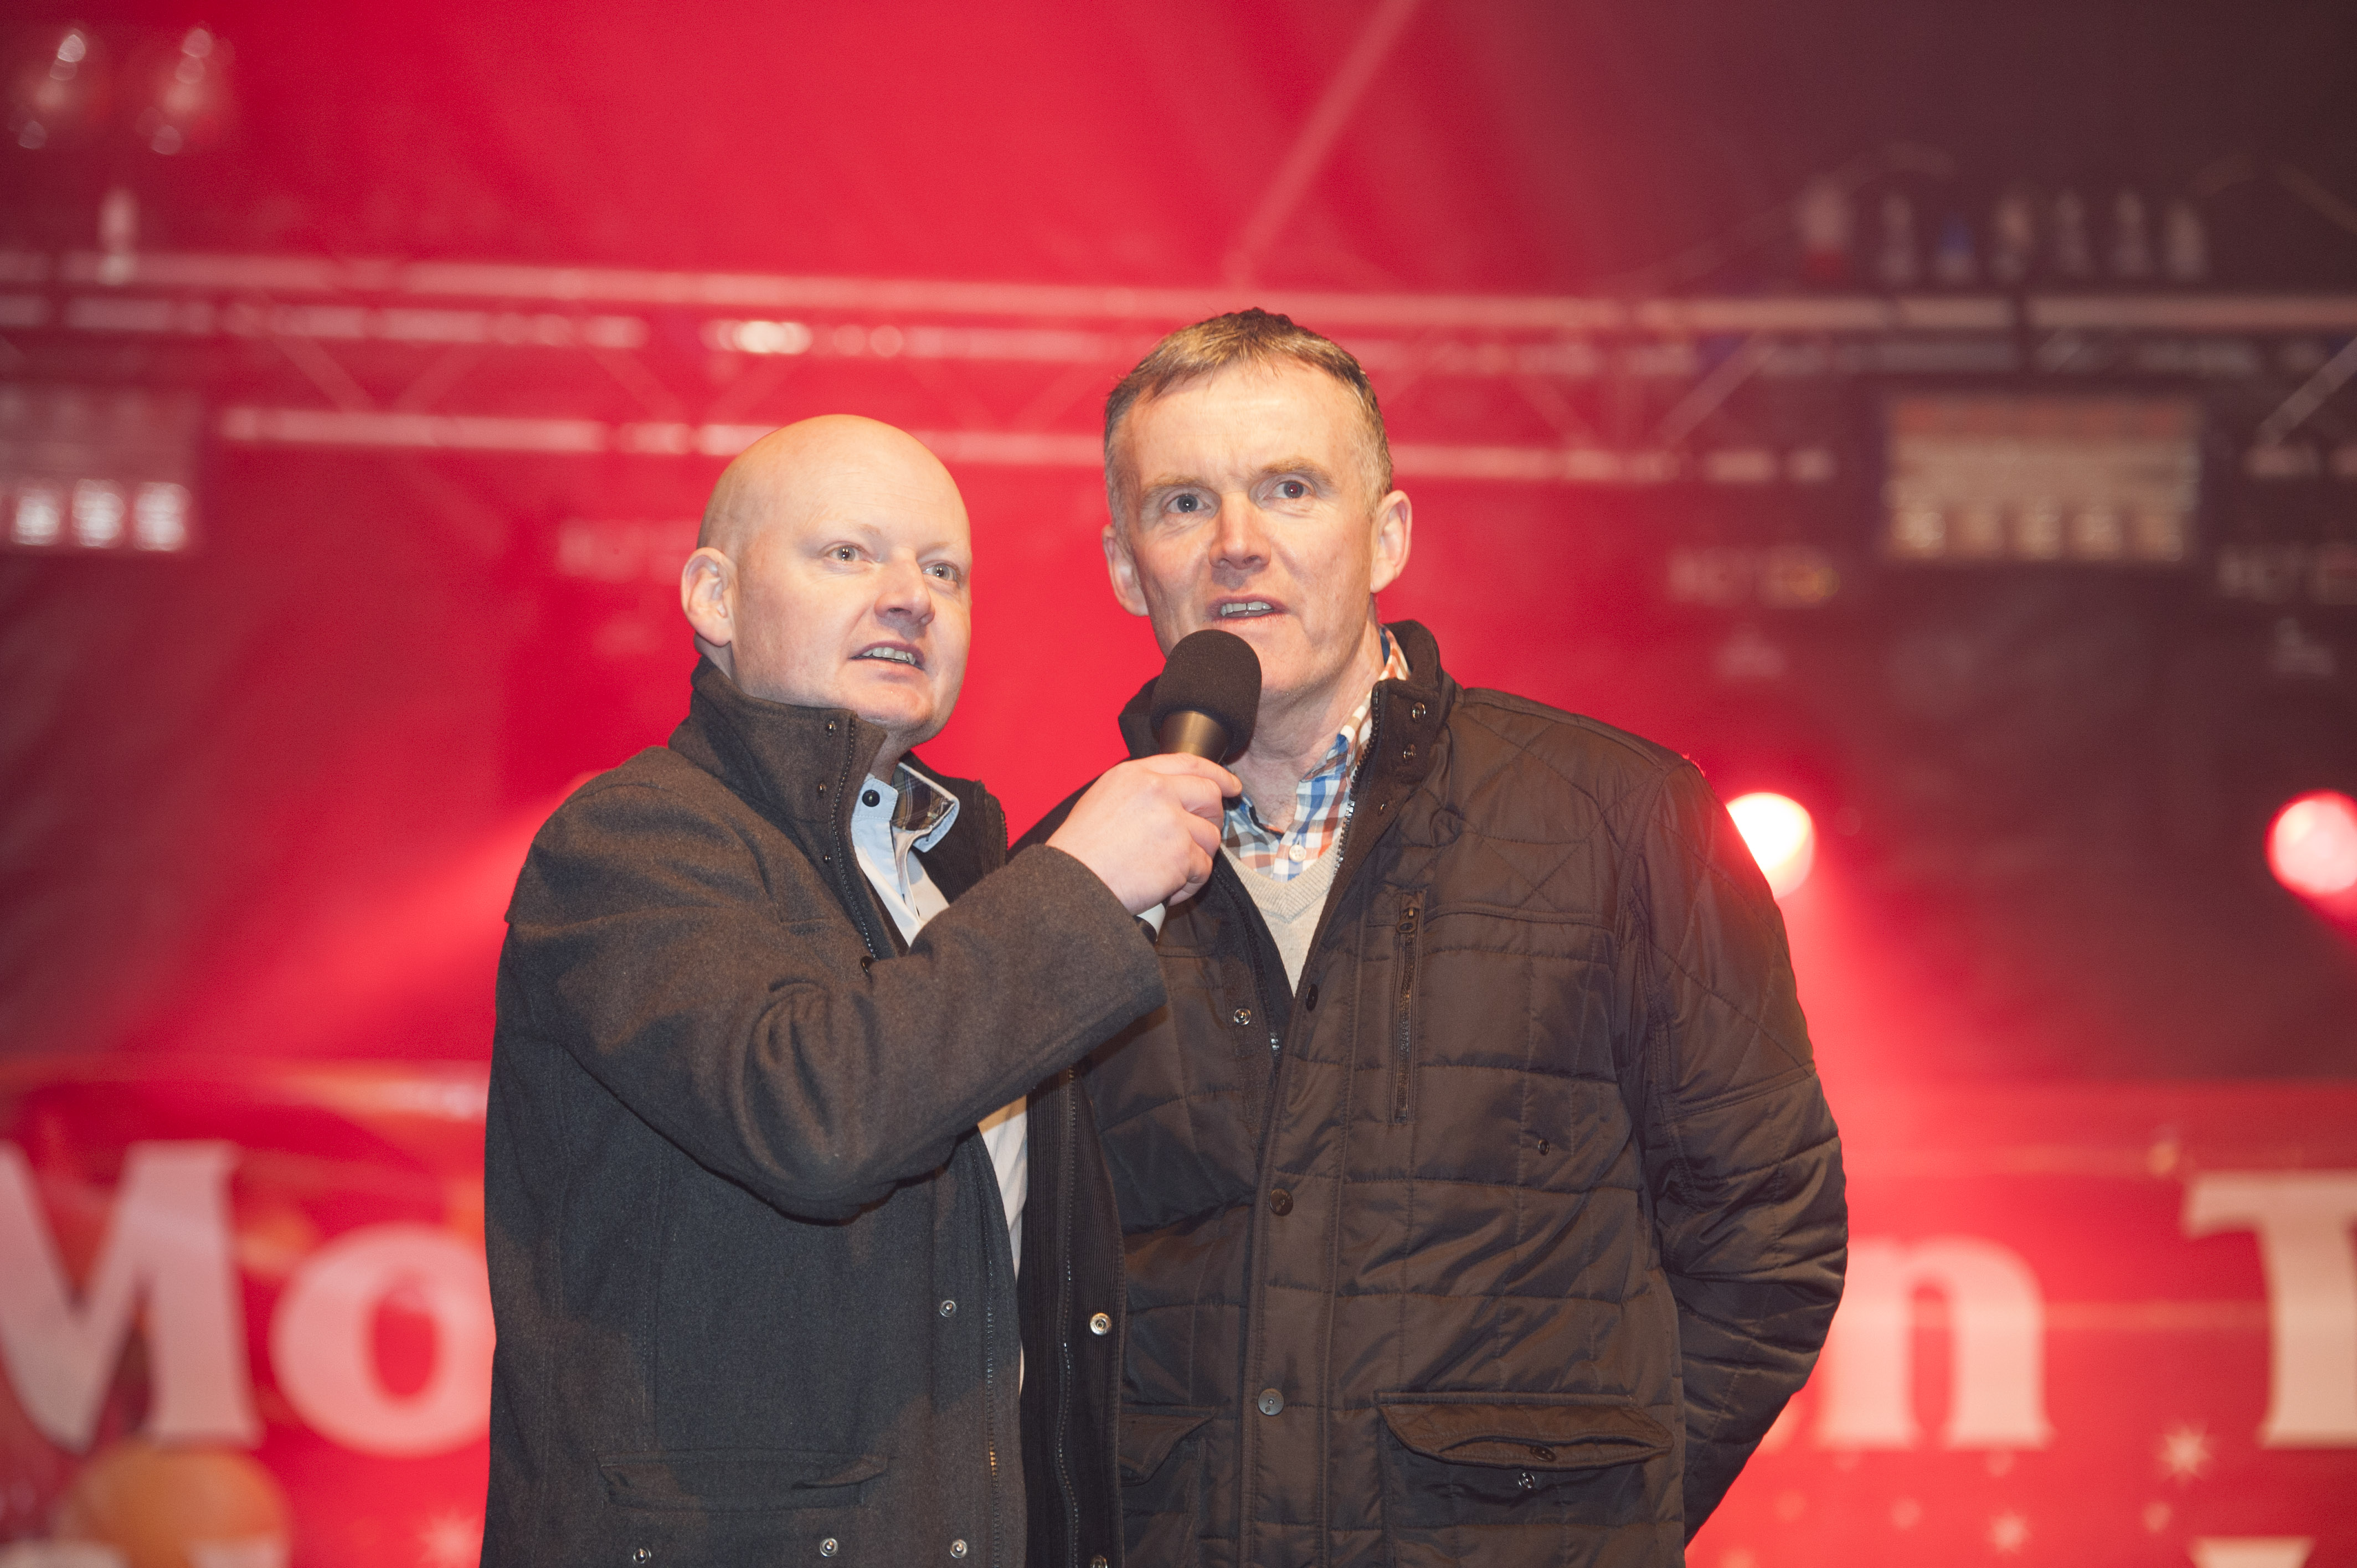 Cathaoirleach of Monaghan Municipal District, Robbie Gallagher, right, speaking with Sean McCaffrey, at the Monaghan Town Christmas Lights Switch-On. ©Rory Geary/The Northern Standard